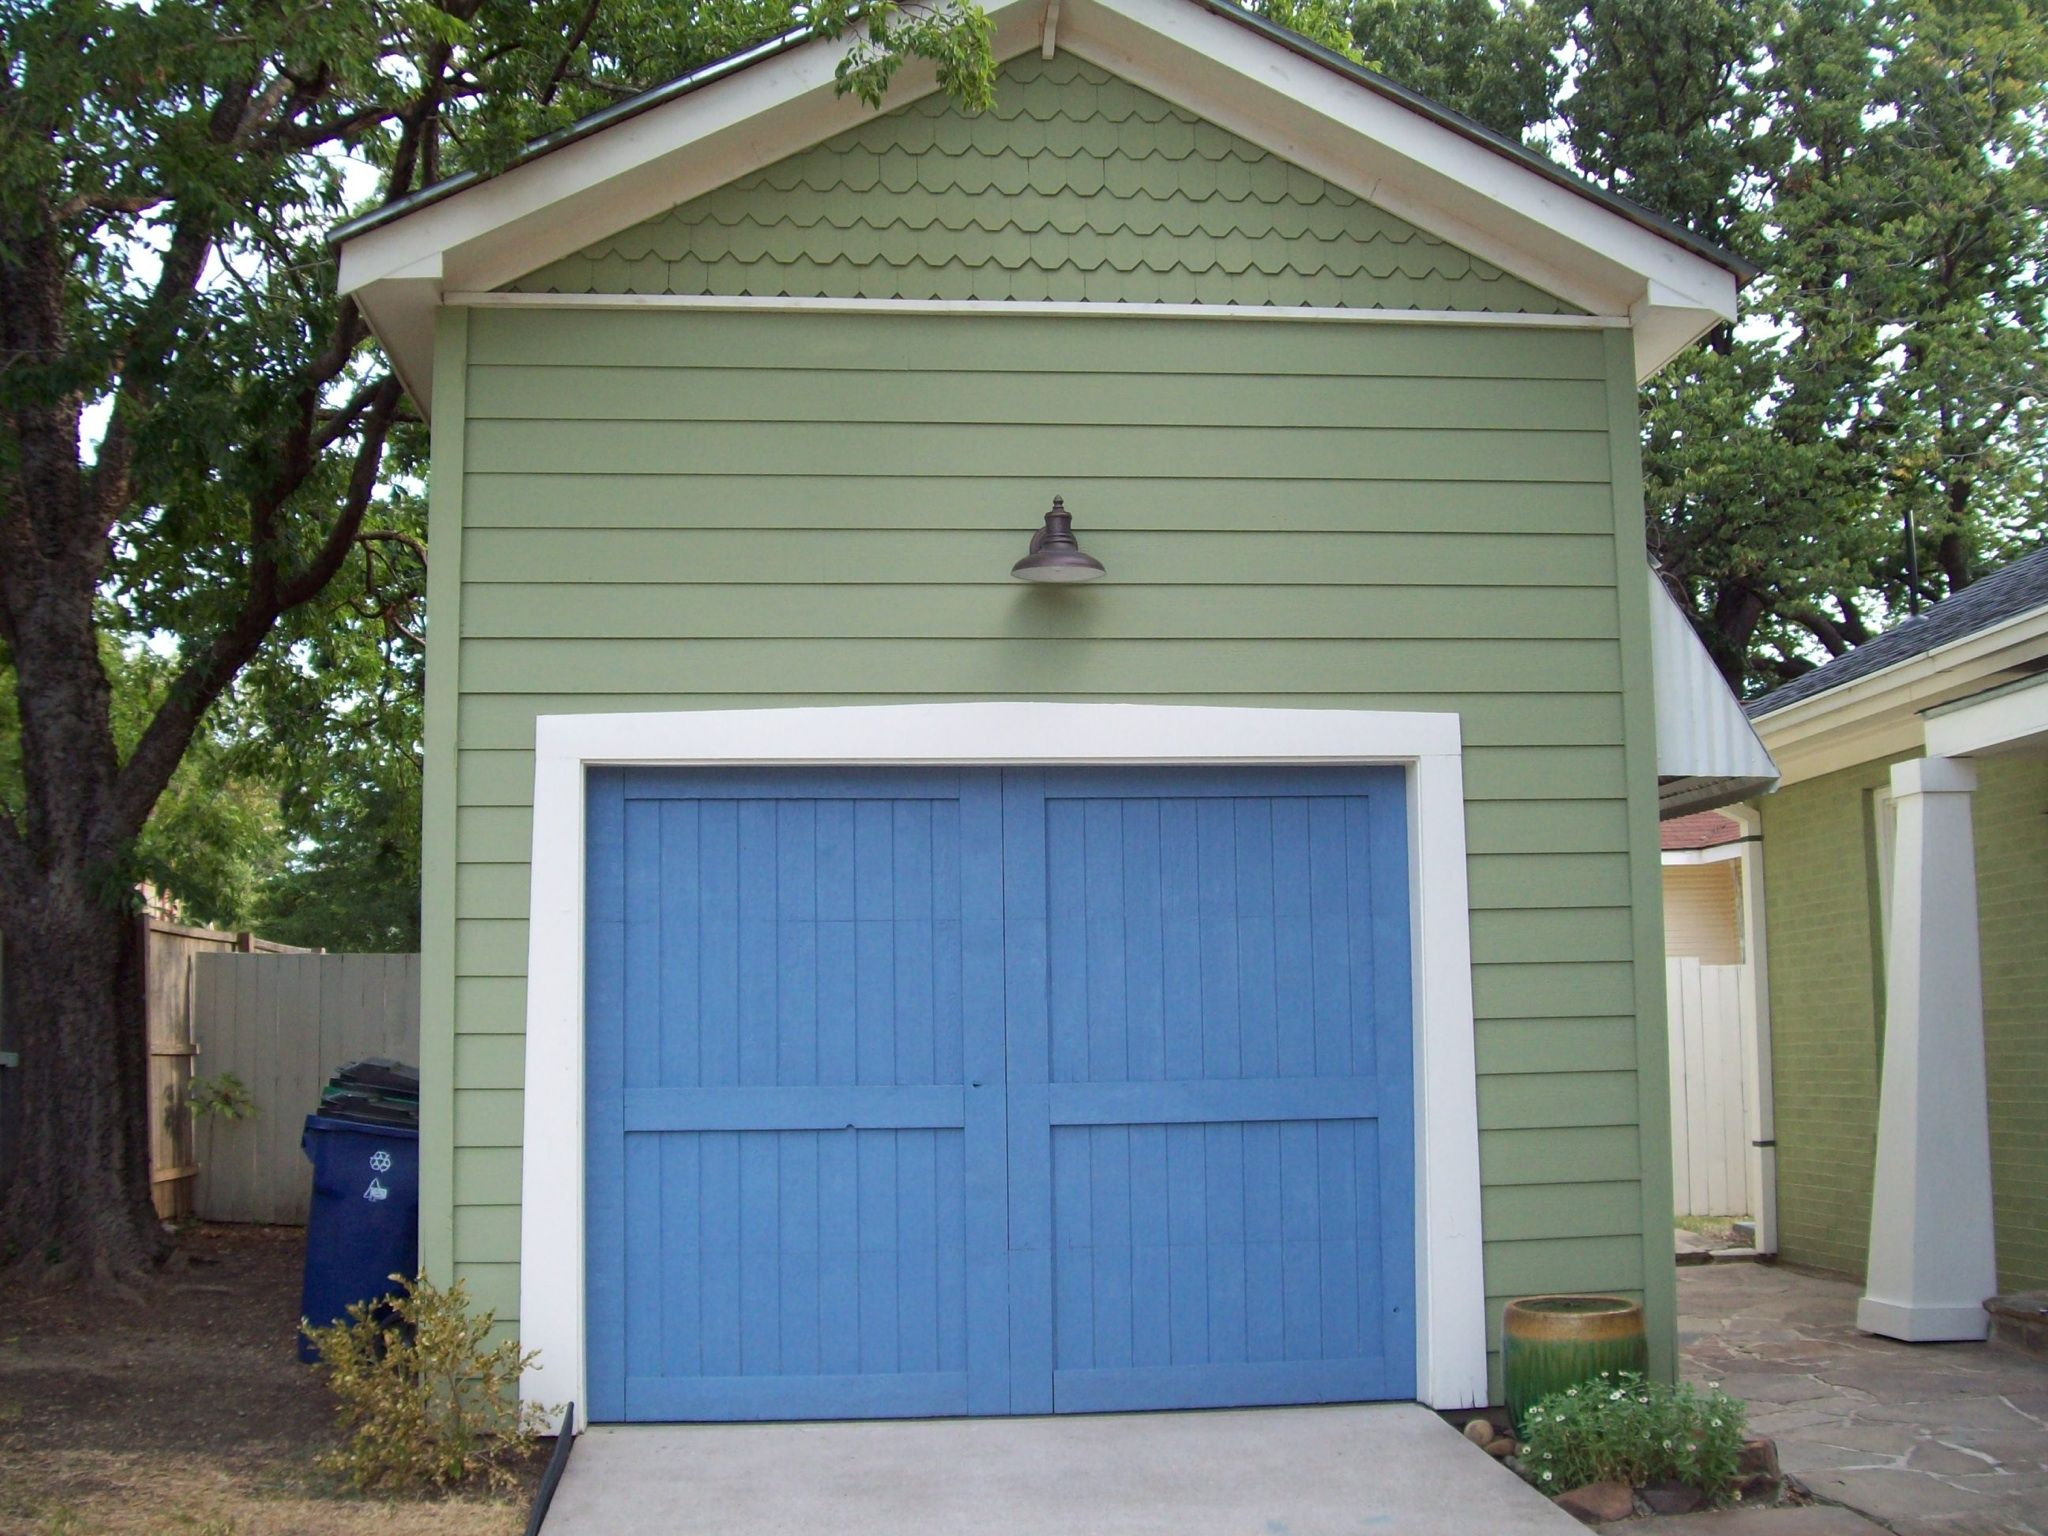 Full Cedar Wood Garage Door The 1 Car Garage Was Built With A 12ft Ceiling To Accommodate A 4 Post Hydrolic Lift To S Wood Garage Doors Garage Doors Cedarwood